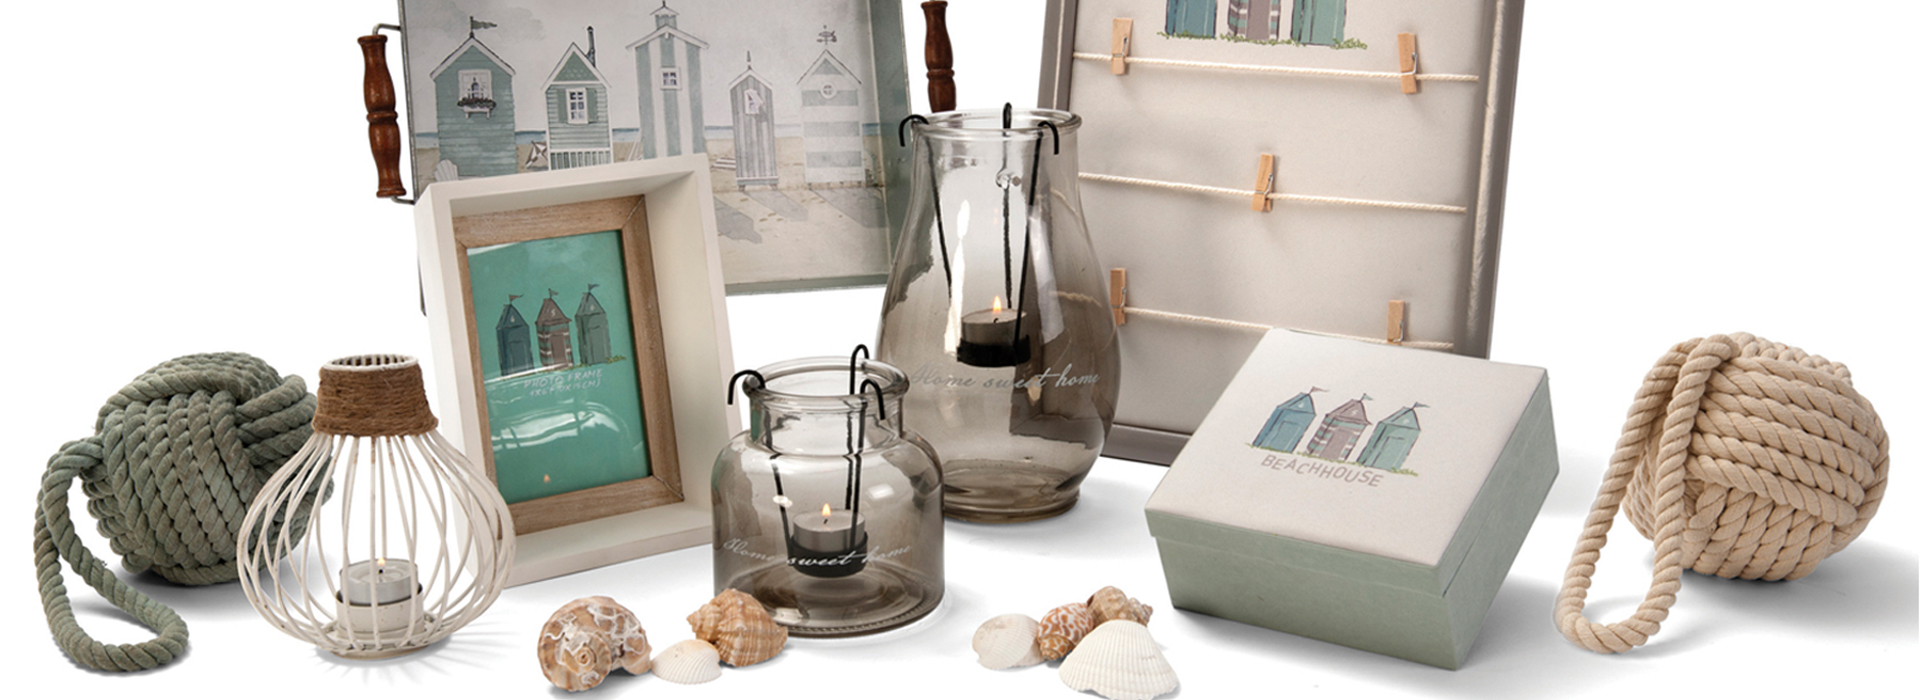 giftware products